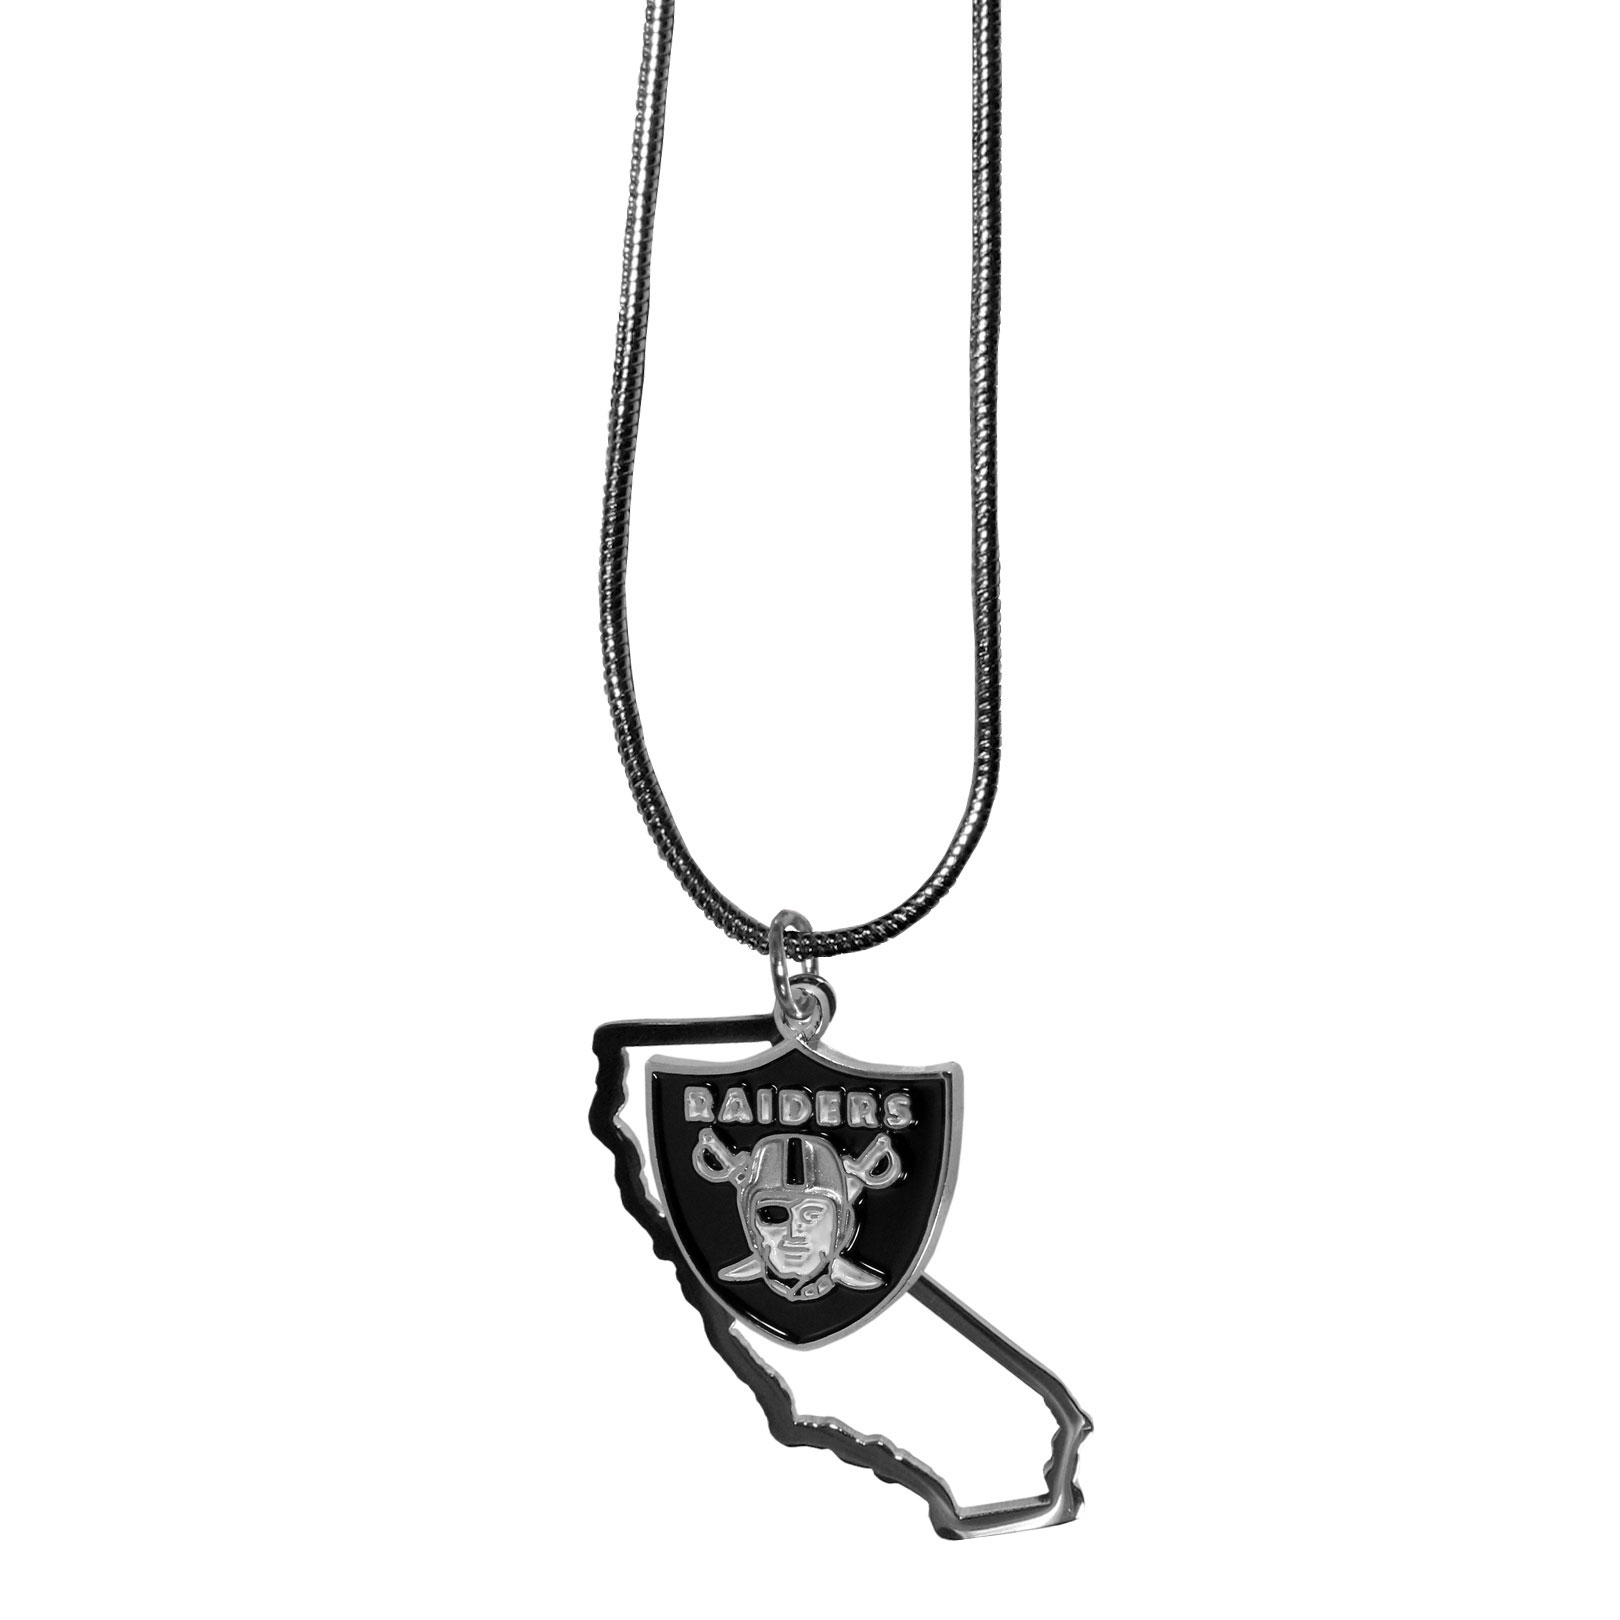 Oakland Raiders State Charm Necklace - Get in on the trend! State themes are a trend that just keeps getting more popular and these necklaces take the state style and give it a sporty twist with a Oakland Raiders added to the state outline charm. The come on a snake chain that is 22 inches long.